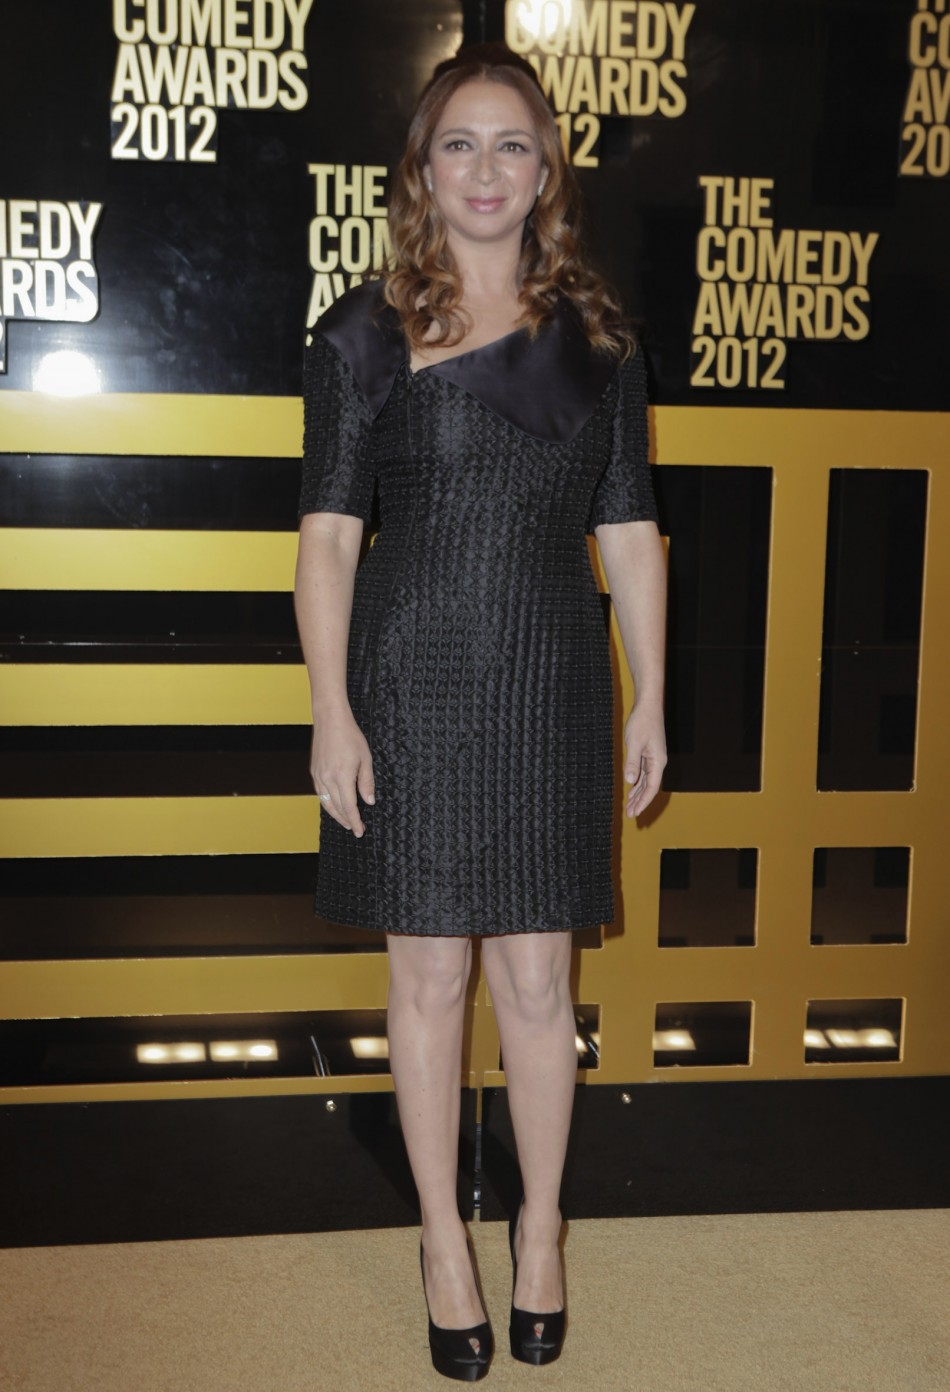 Actress Rudolph arrives at the Comedy Awards 2012 in New York